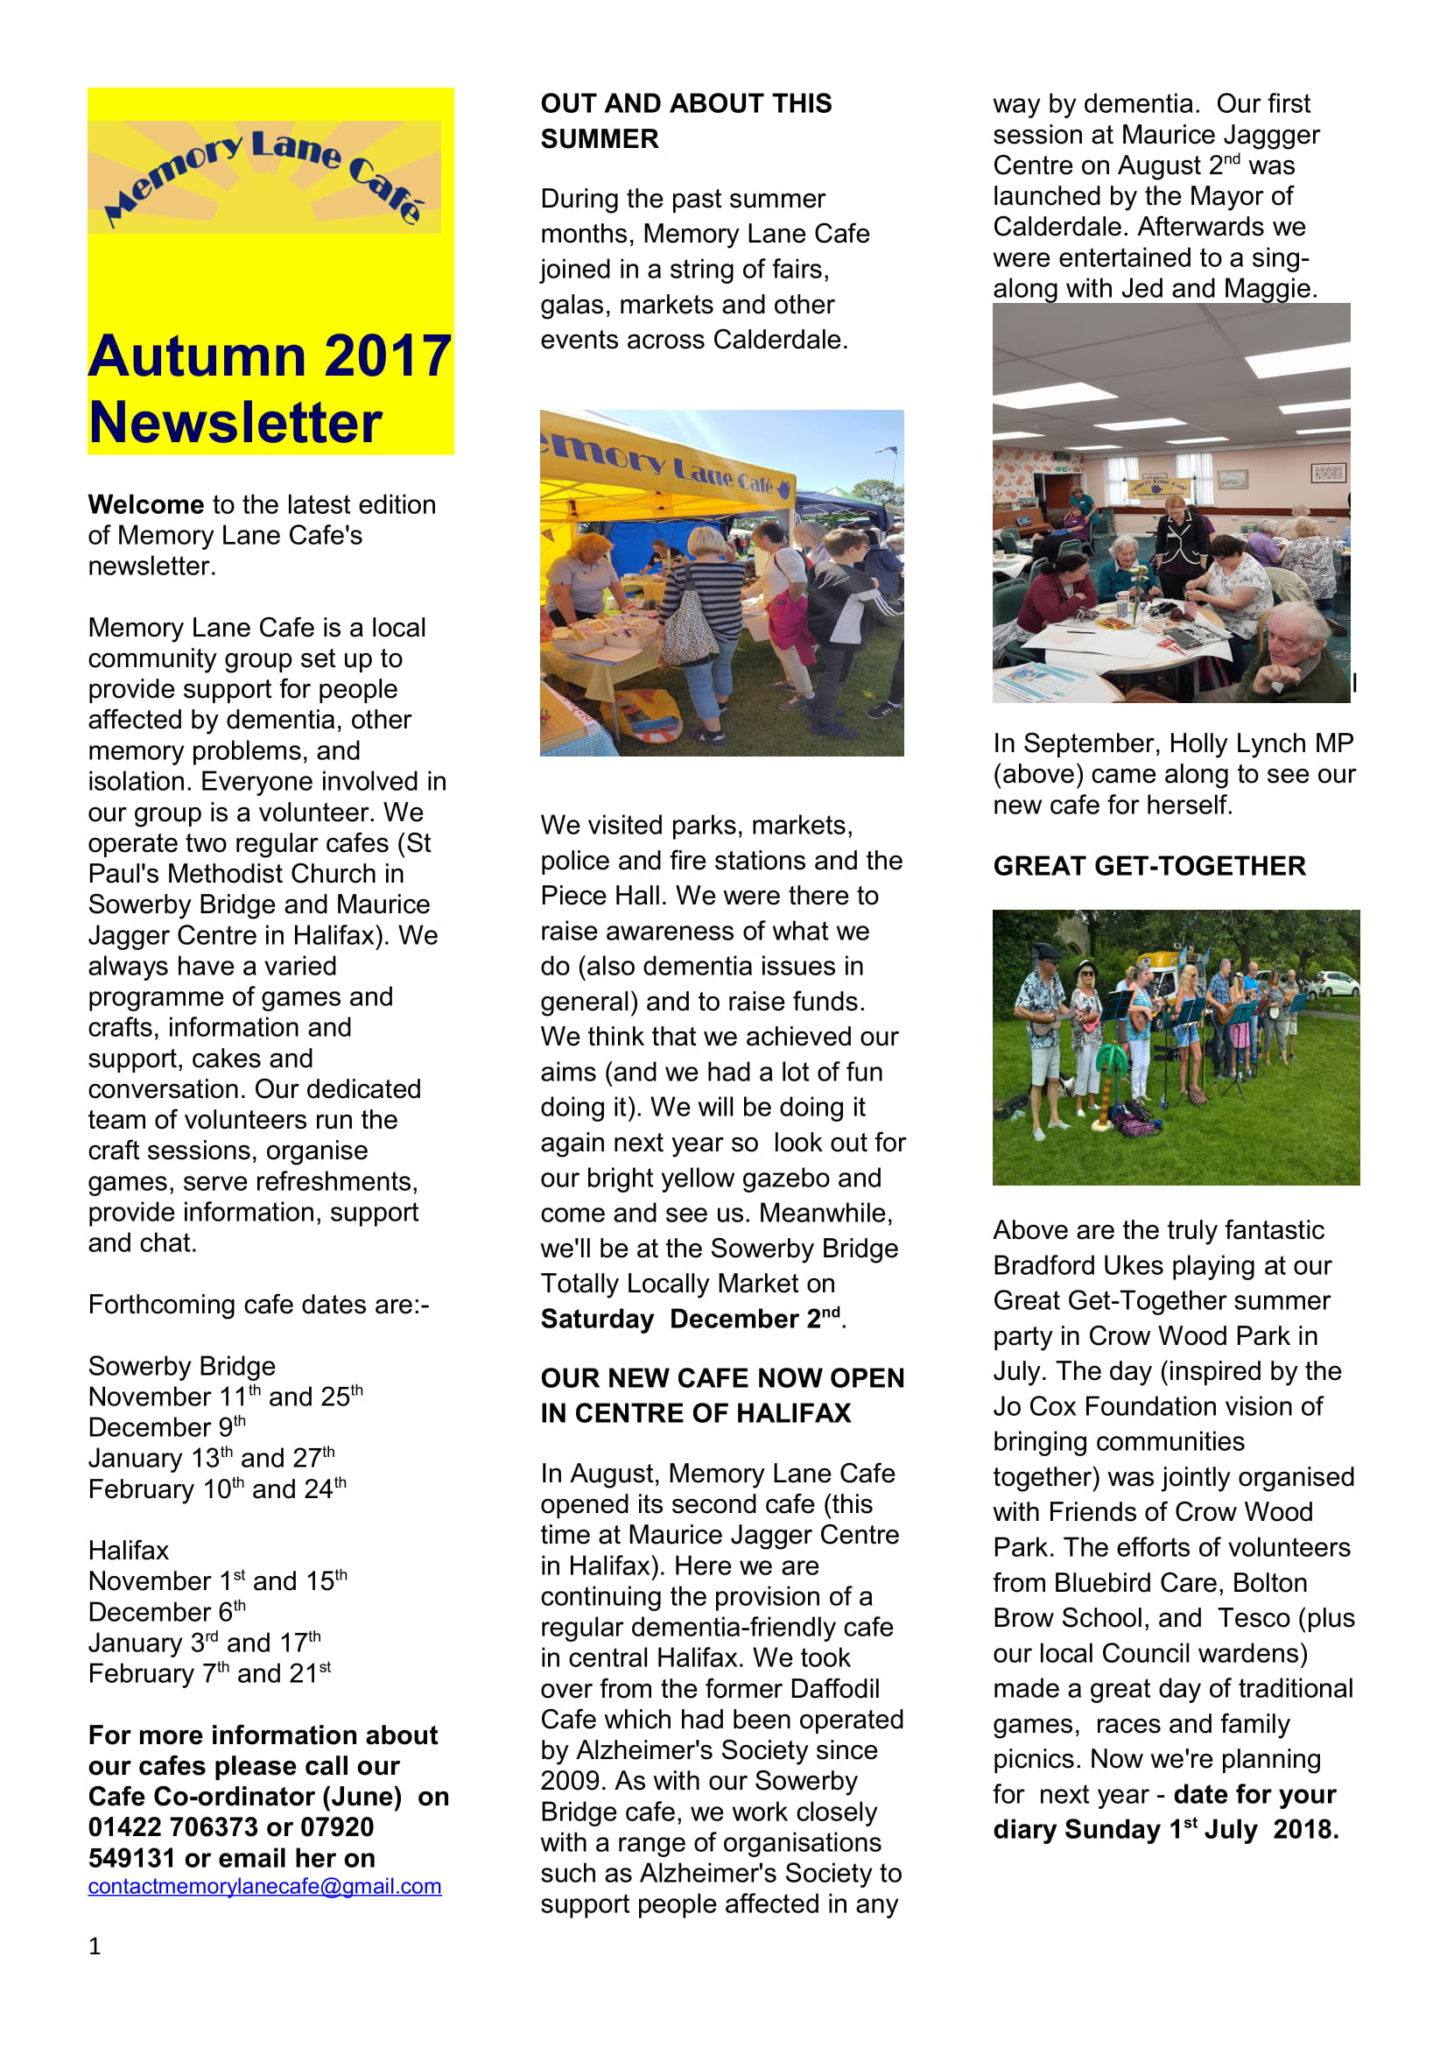 Memory lane Cafe Calderdale Newsletter-AUTUMN 2017